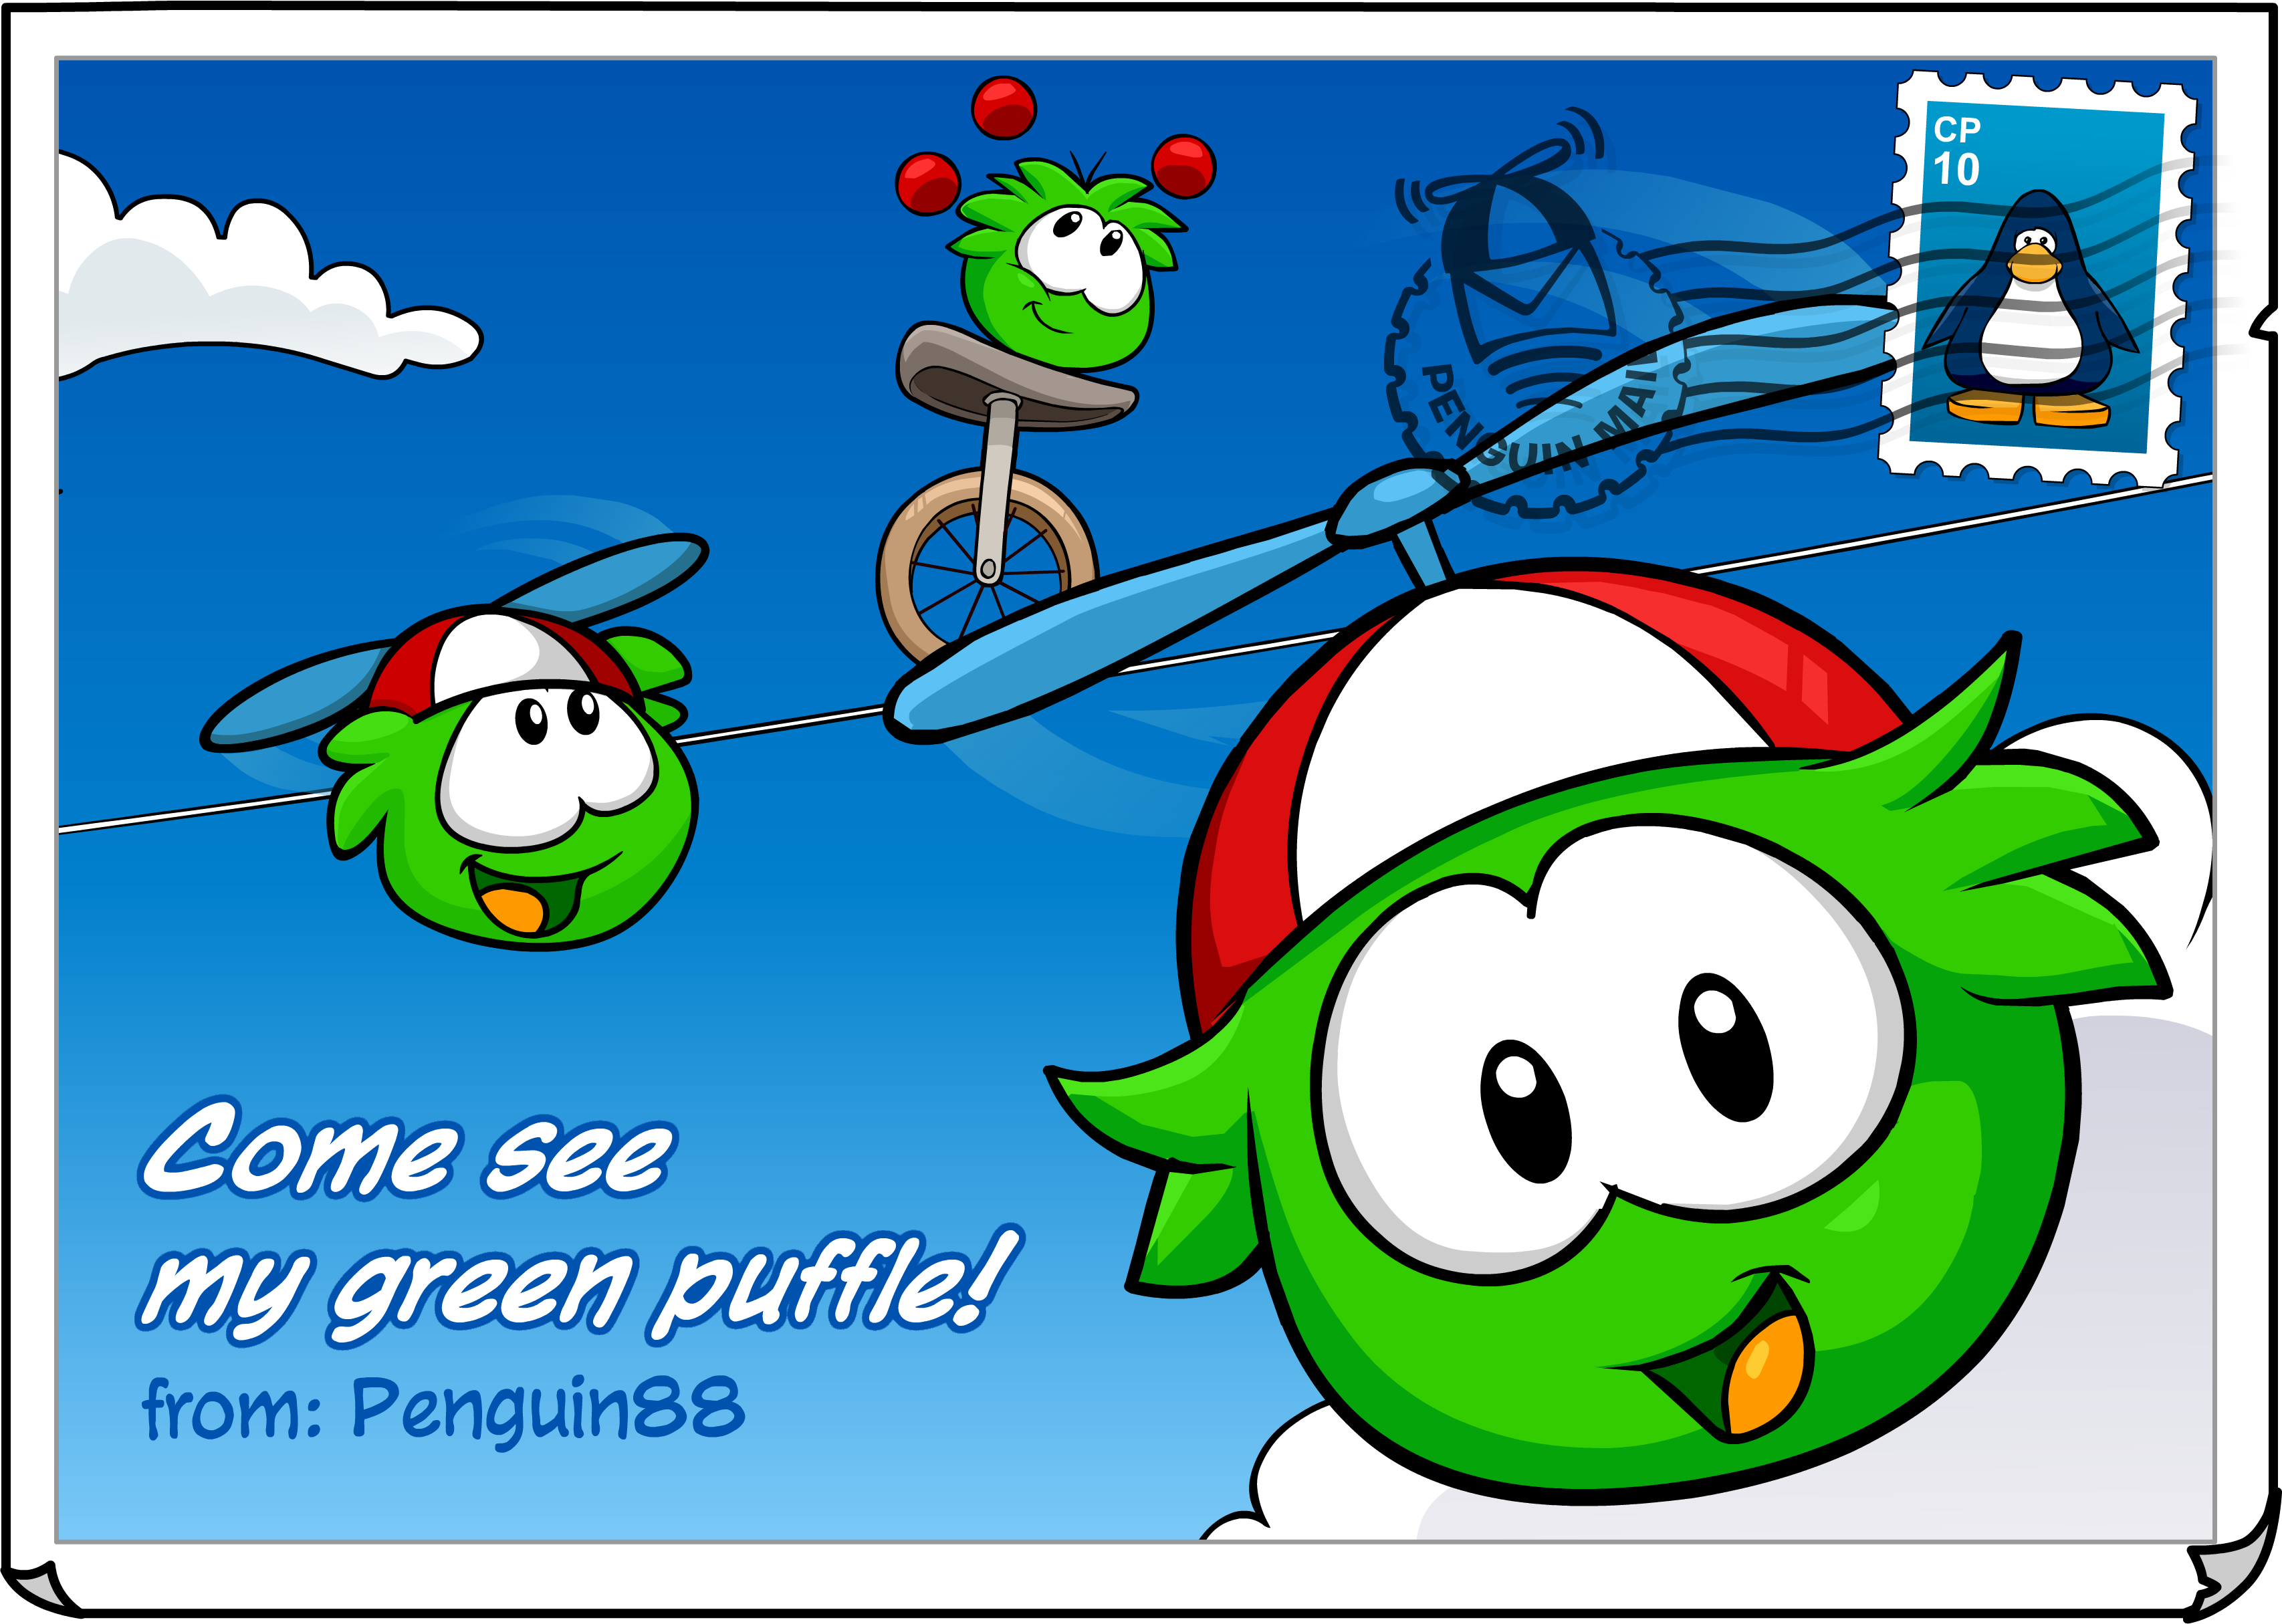 File:Green Puffle postcard.png